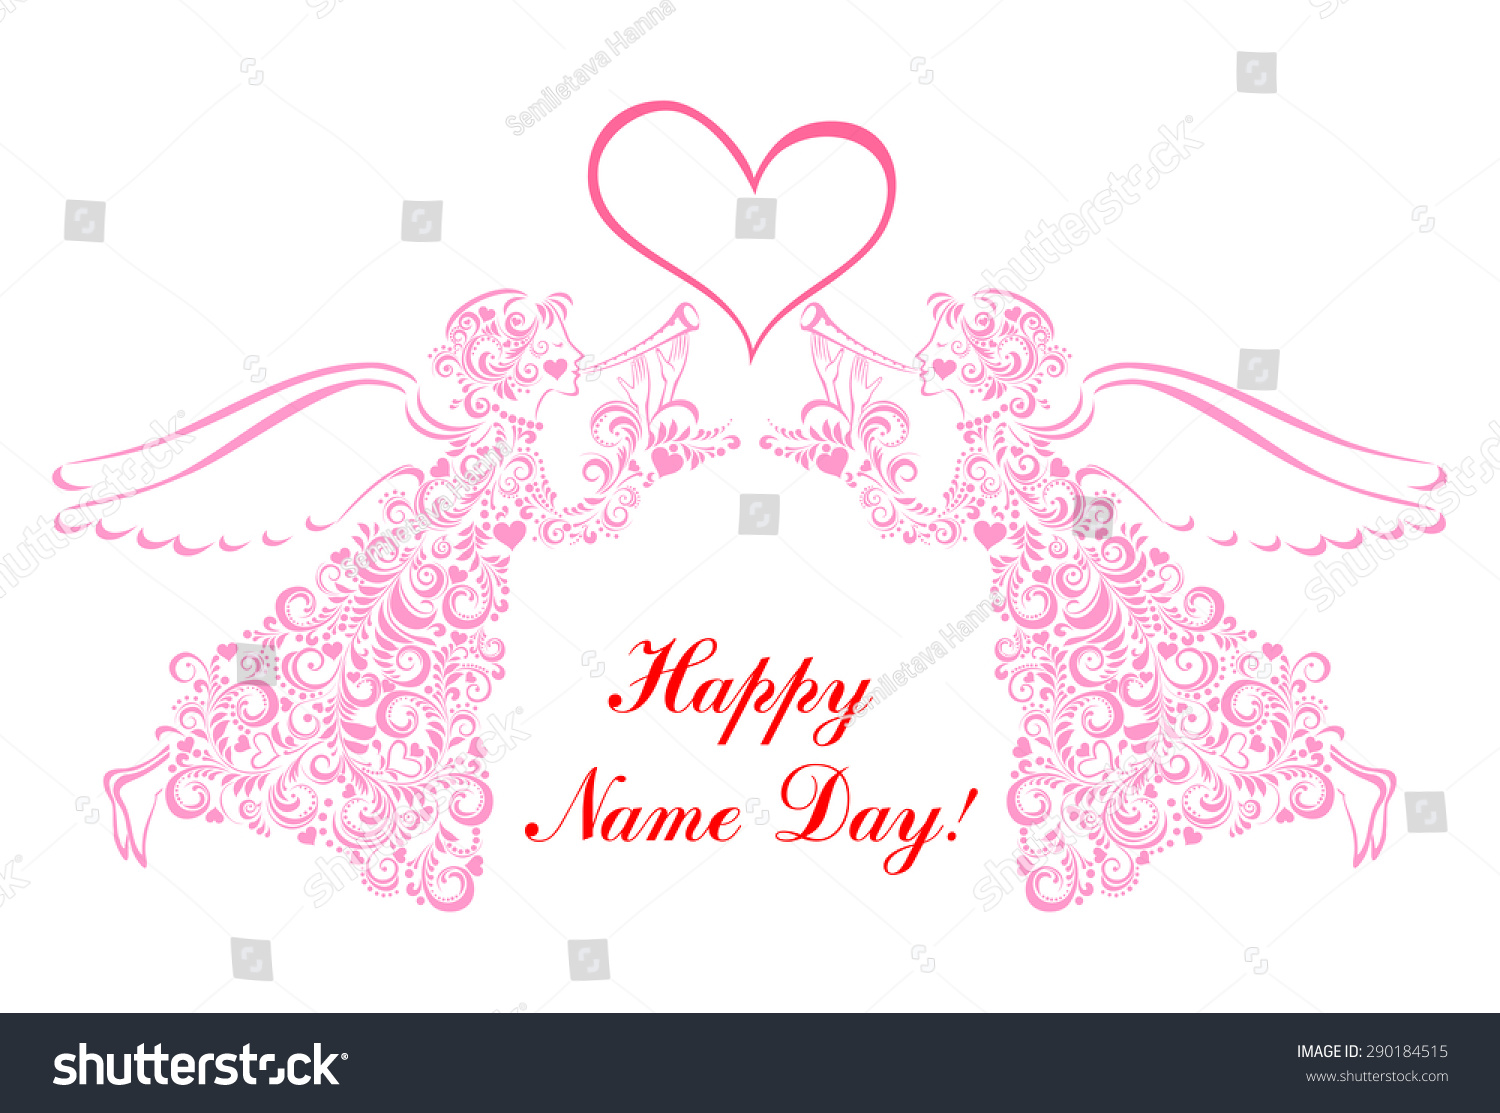 Name day greeting card angel vector stock vector royalty free name day greeting card with angel vector illustration m4hsunfo